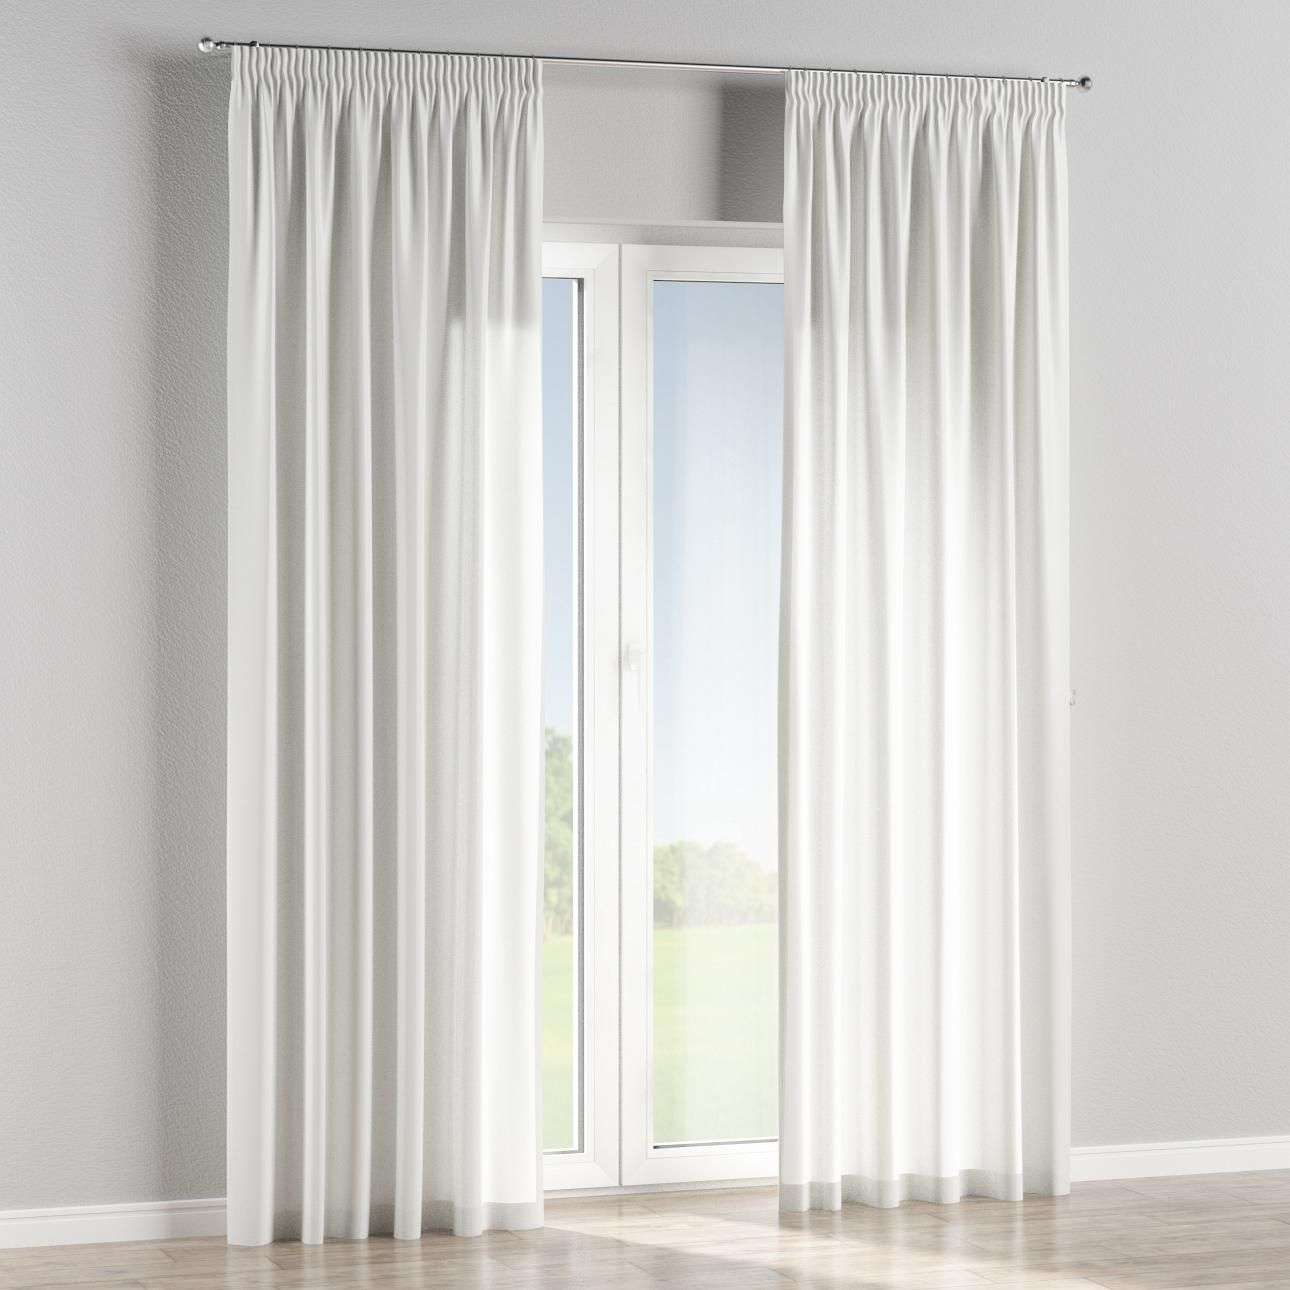 Pencil pleat curtains in collection Ashley, fabric: 137-46